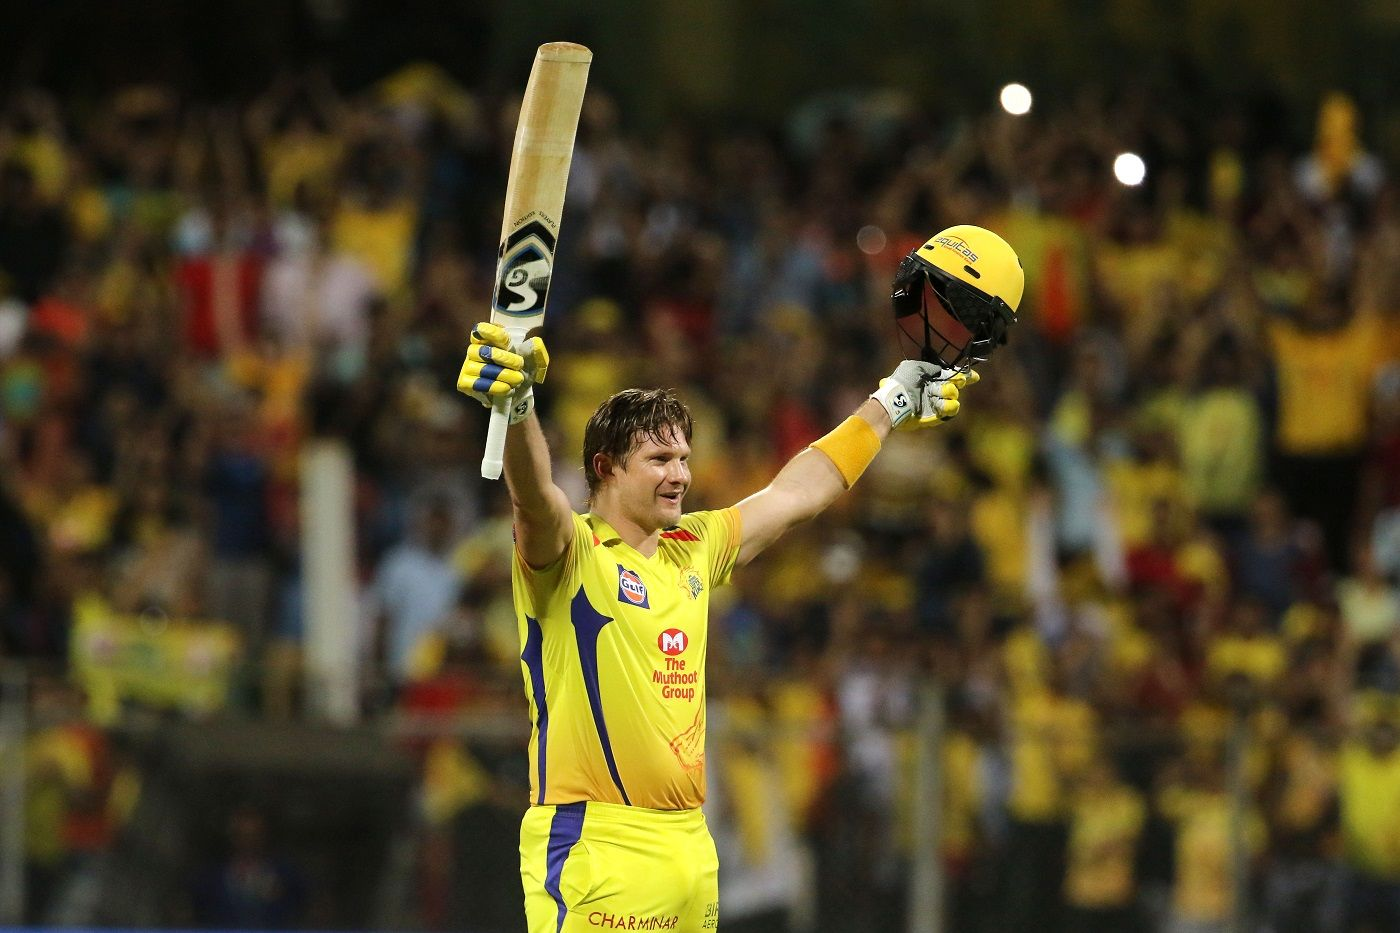 Shane Watson powered CSK to the IPL title this year.